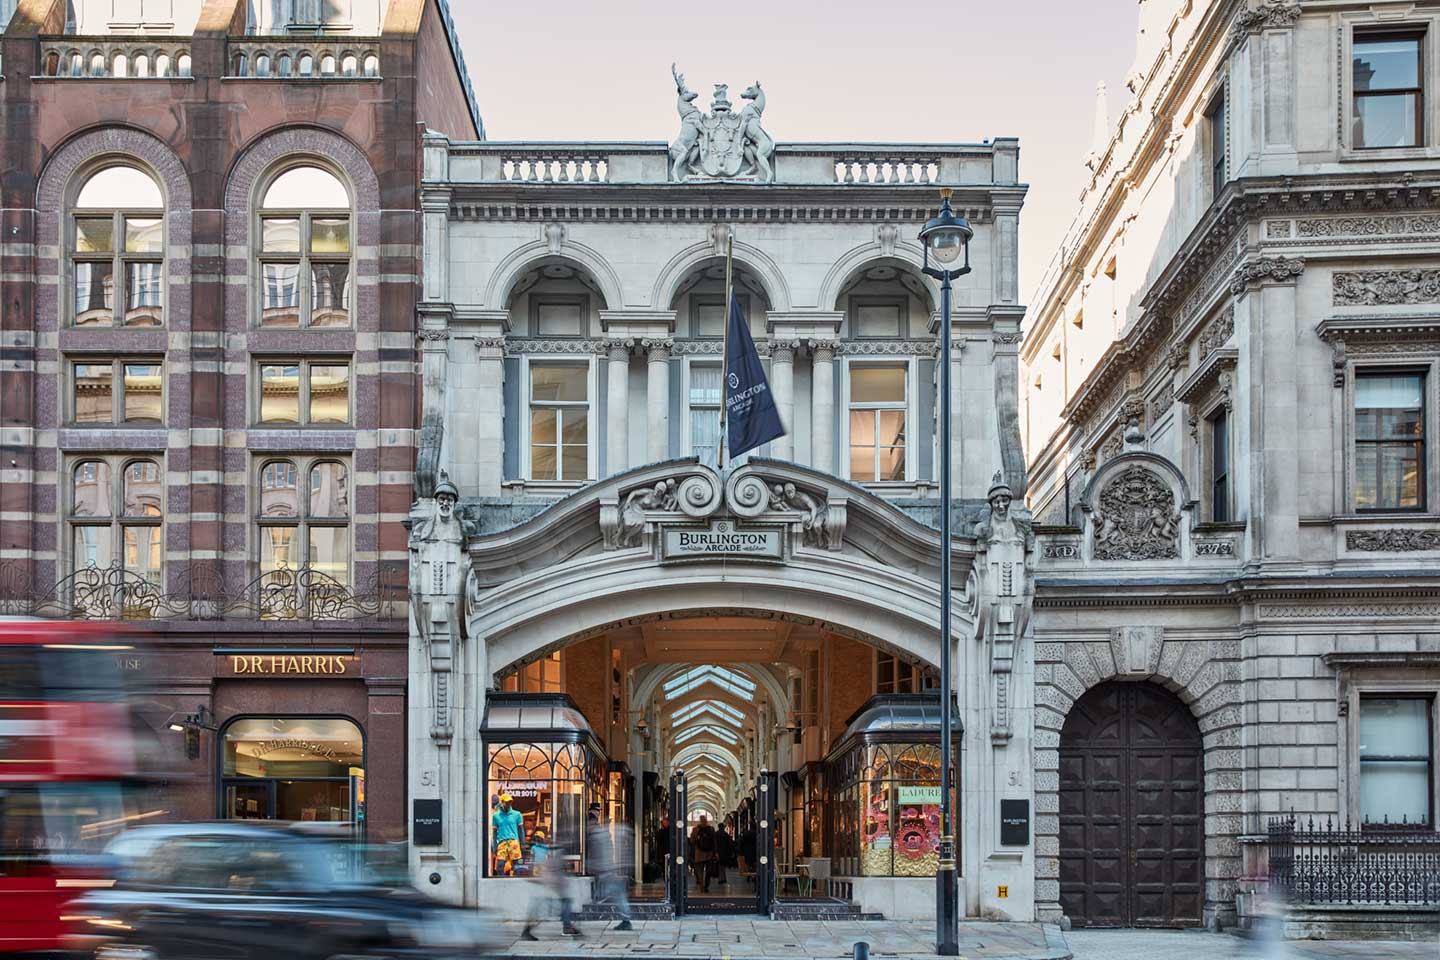 Burlington Arcade, Mayfair